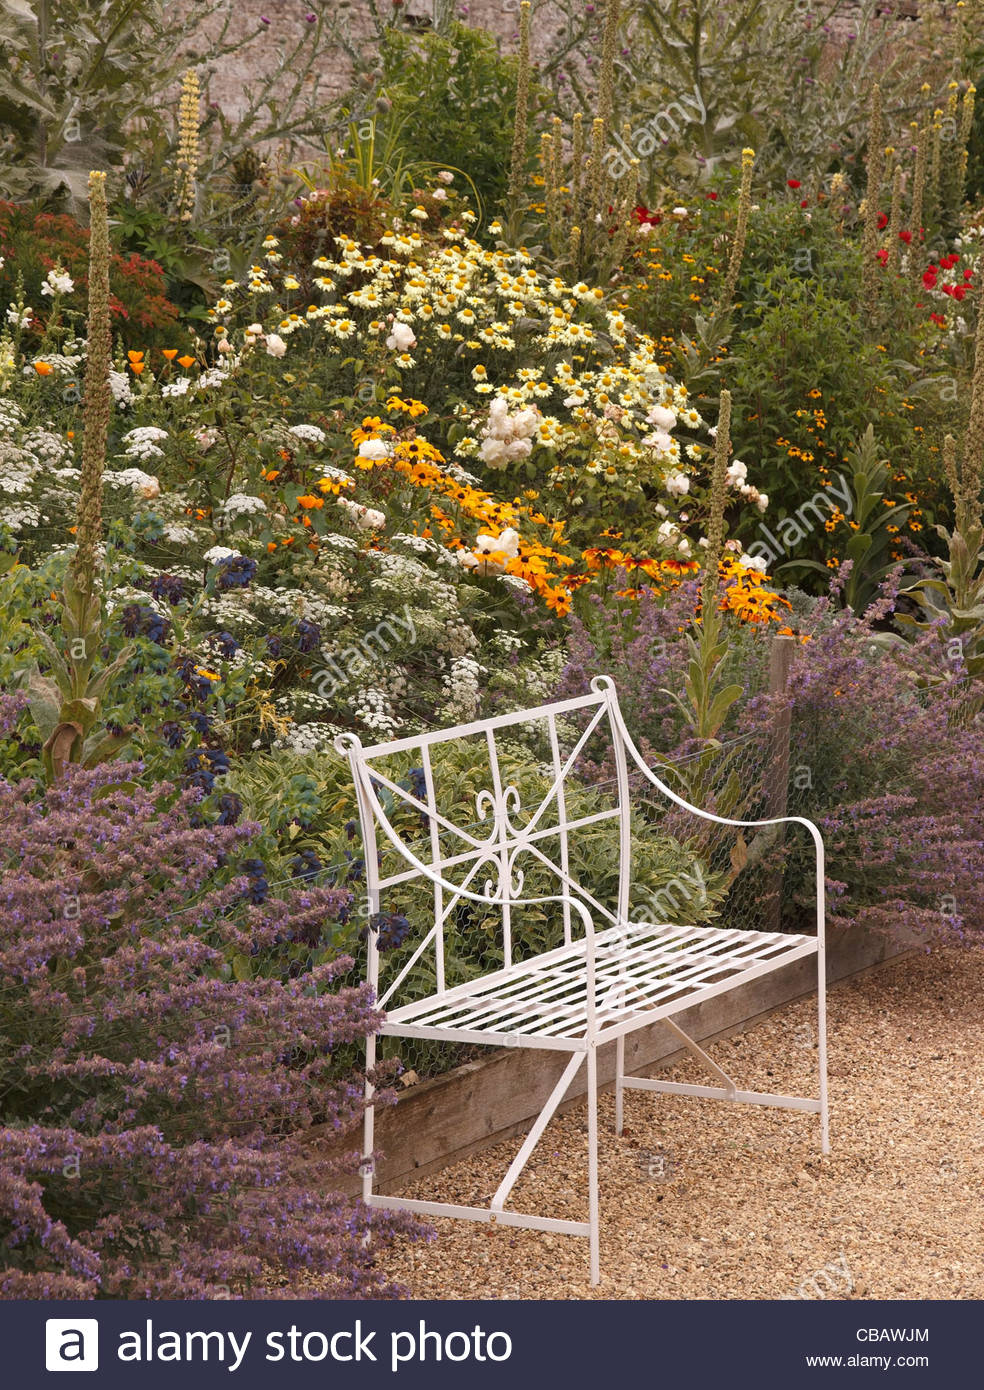 Remarkable Ornate White Metal Bench Seat In Front Of Flower Bed Border Ocoug Best Dining Table And Chair Ideas Images Ocougorg